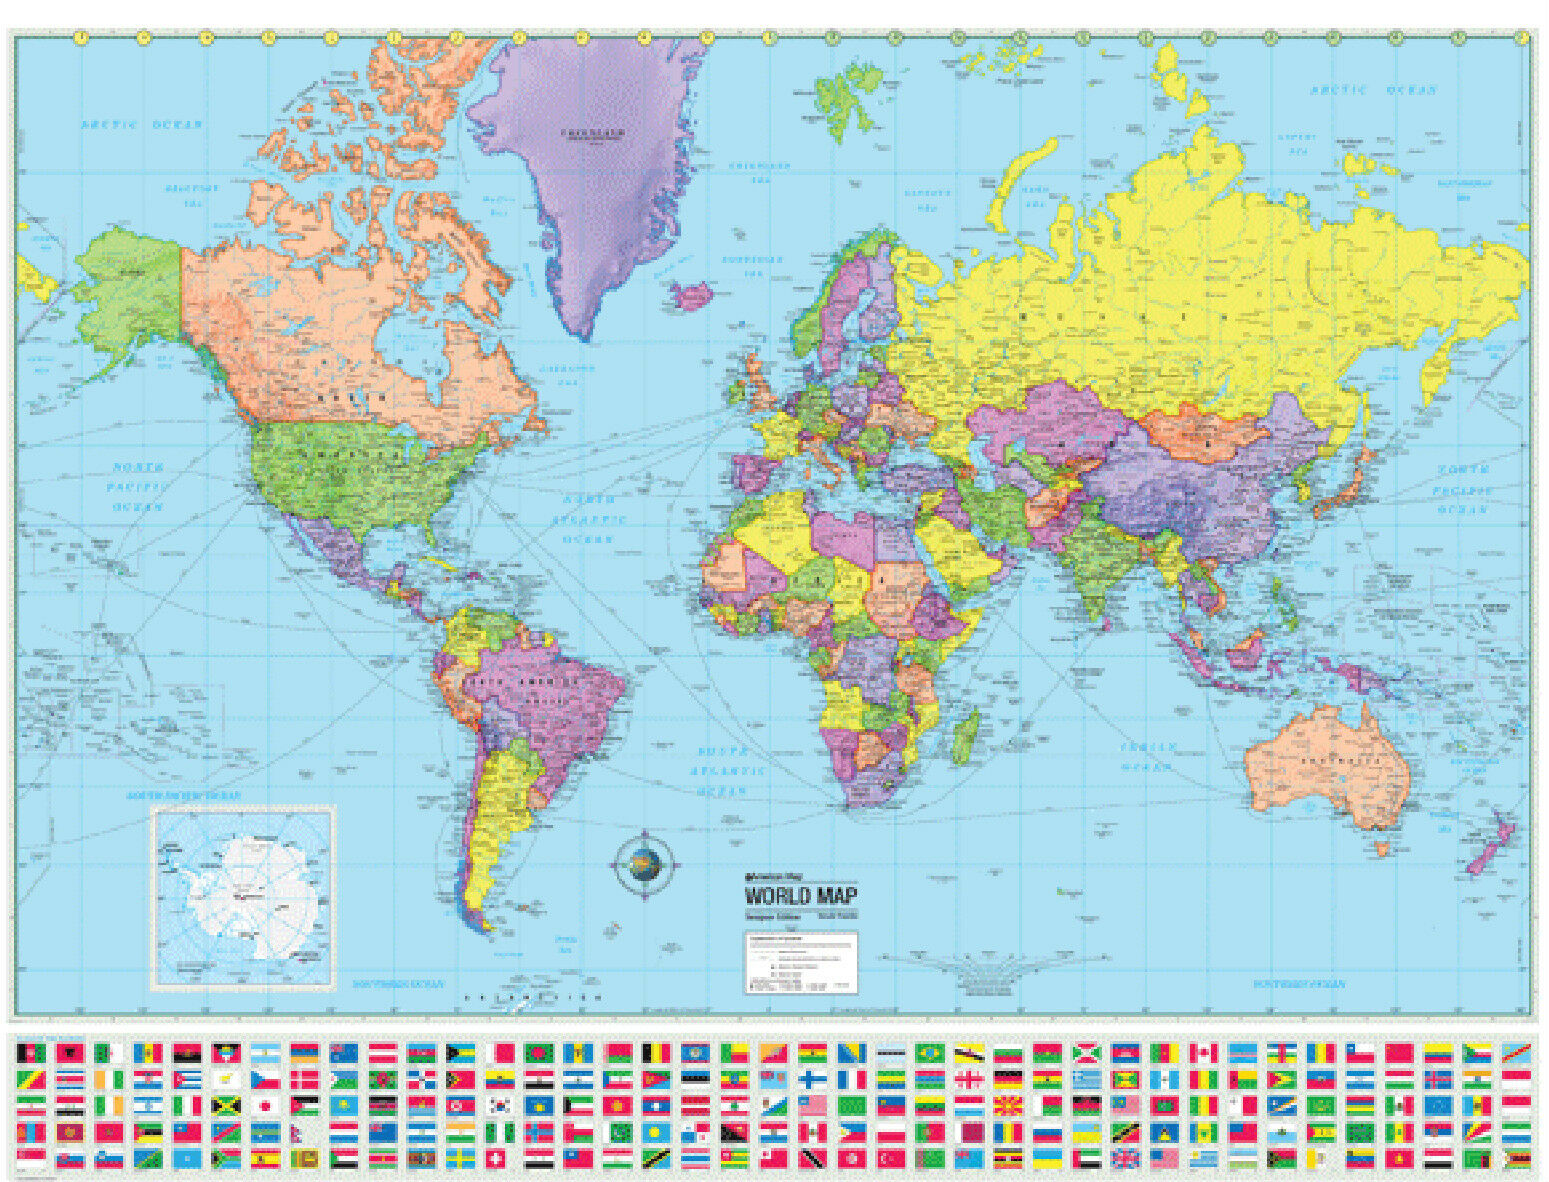 World wall map poster political flags home office school 48x36 picture 1 of 2 sciox Image collections